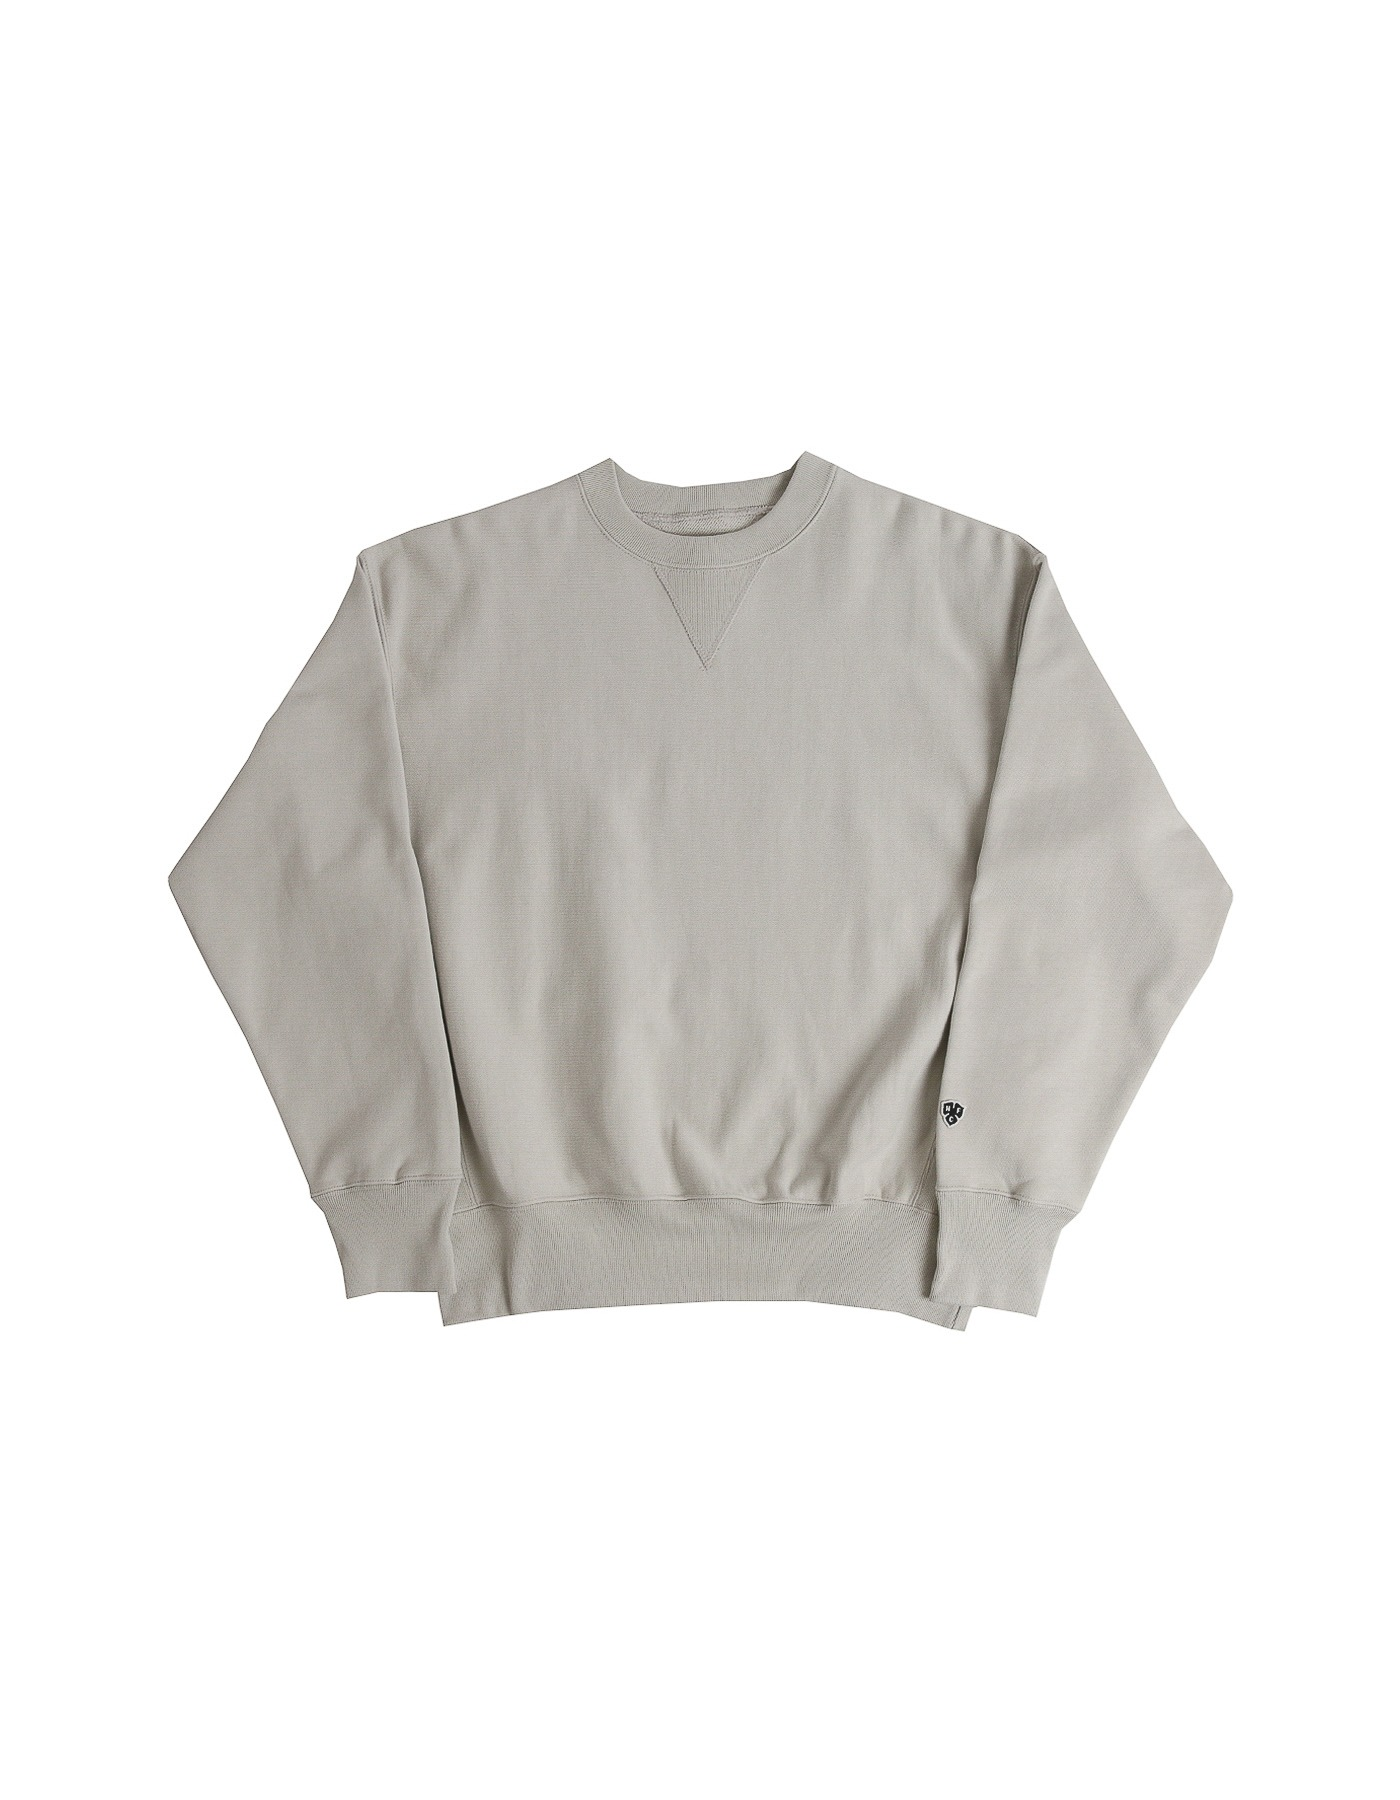 221 REVERSE CREWNECK / LIGHT JADE